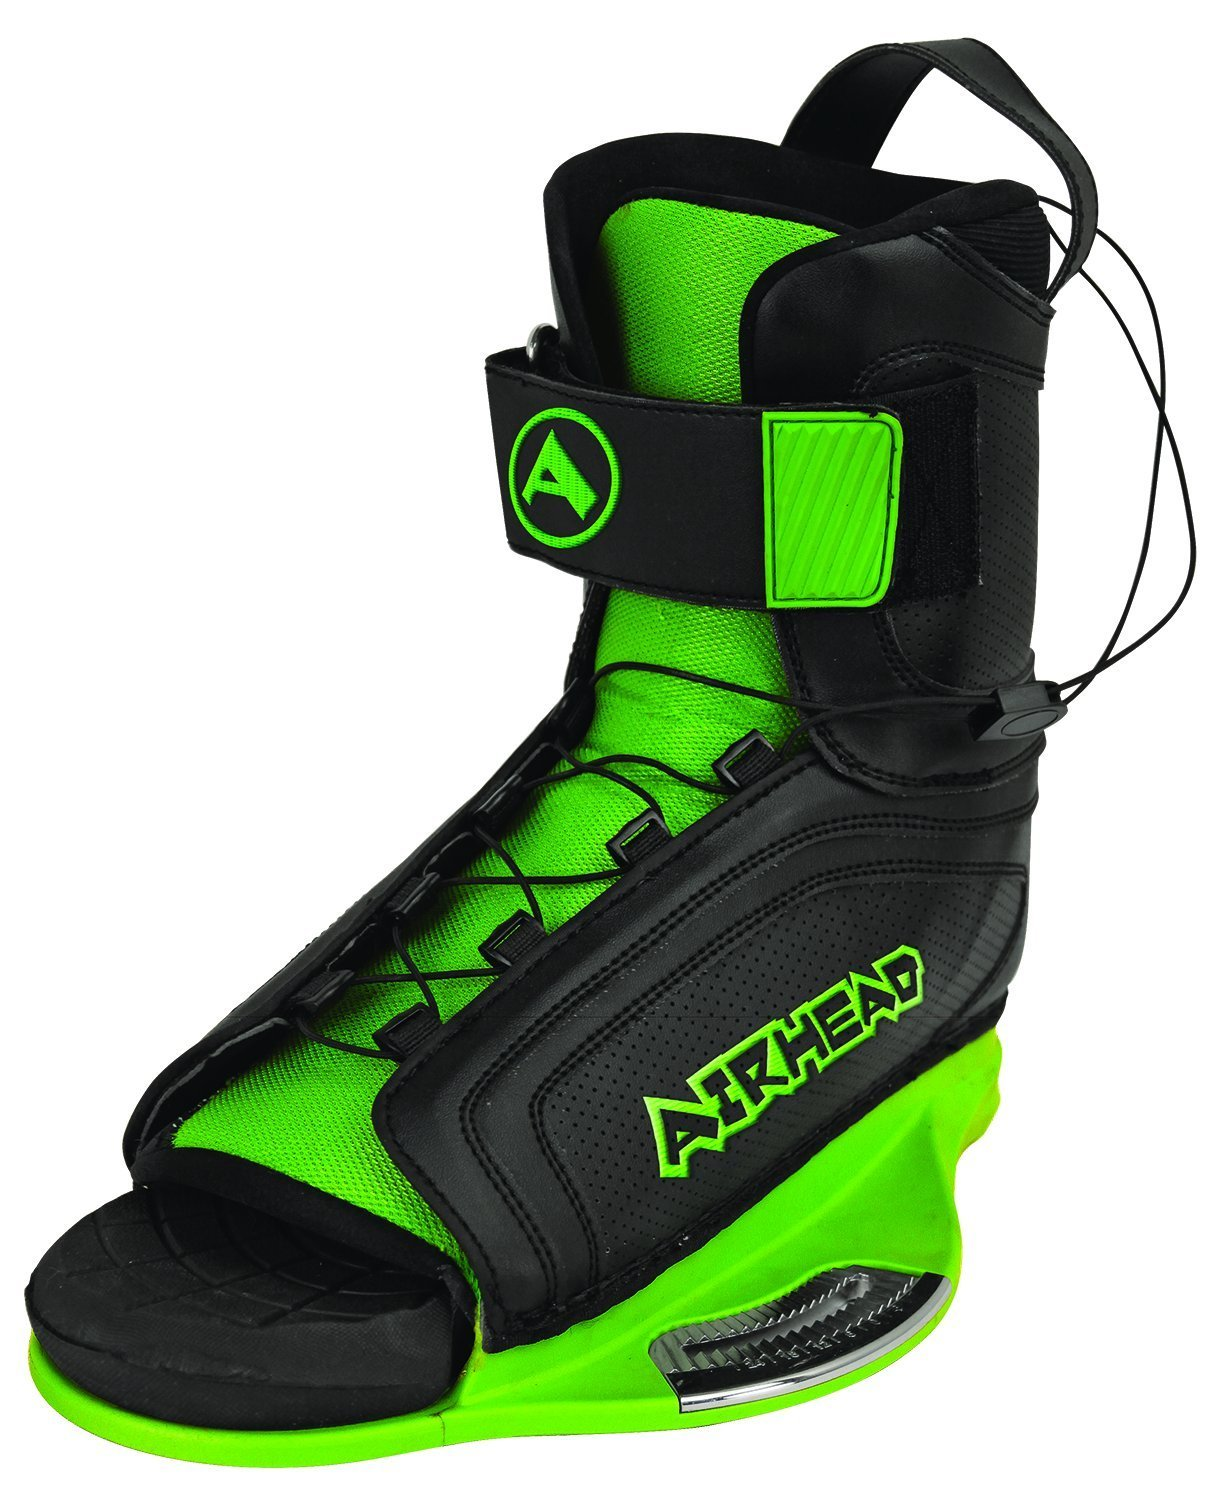 Water ski board tailboard special water ski shoes,water shoe retainer.